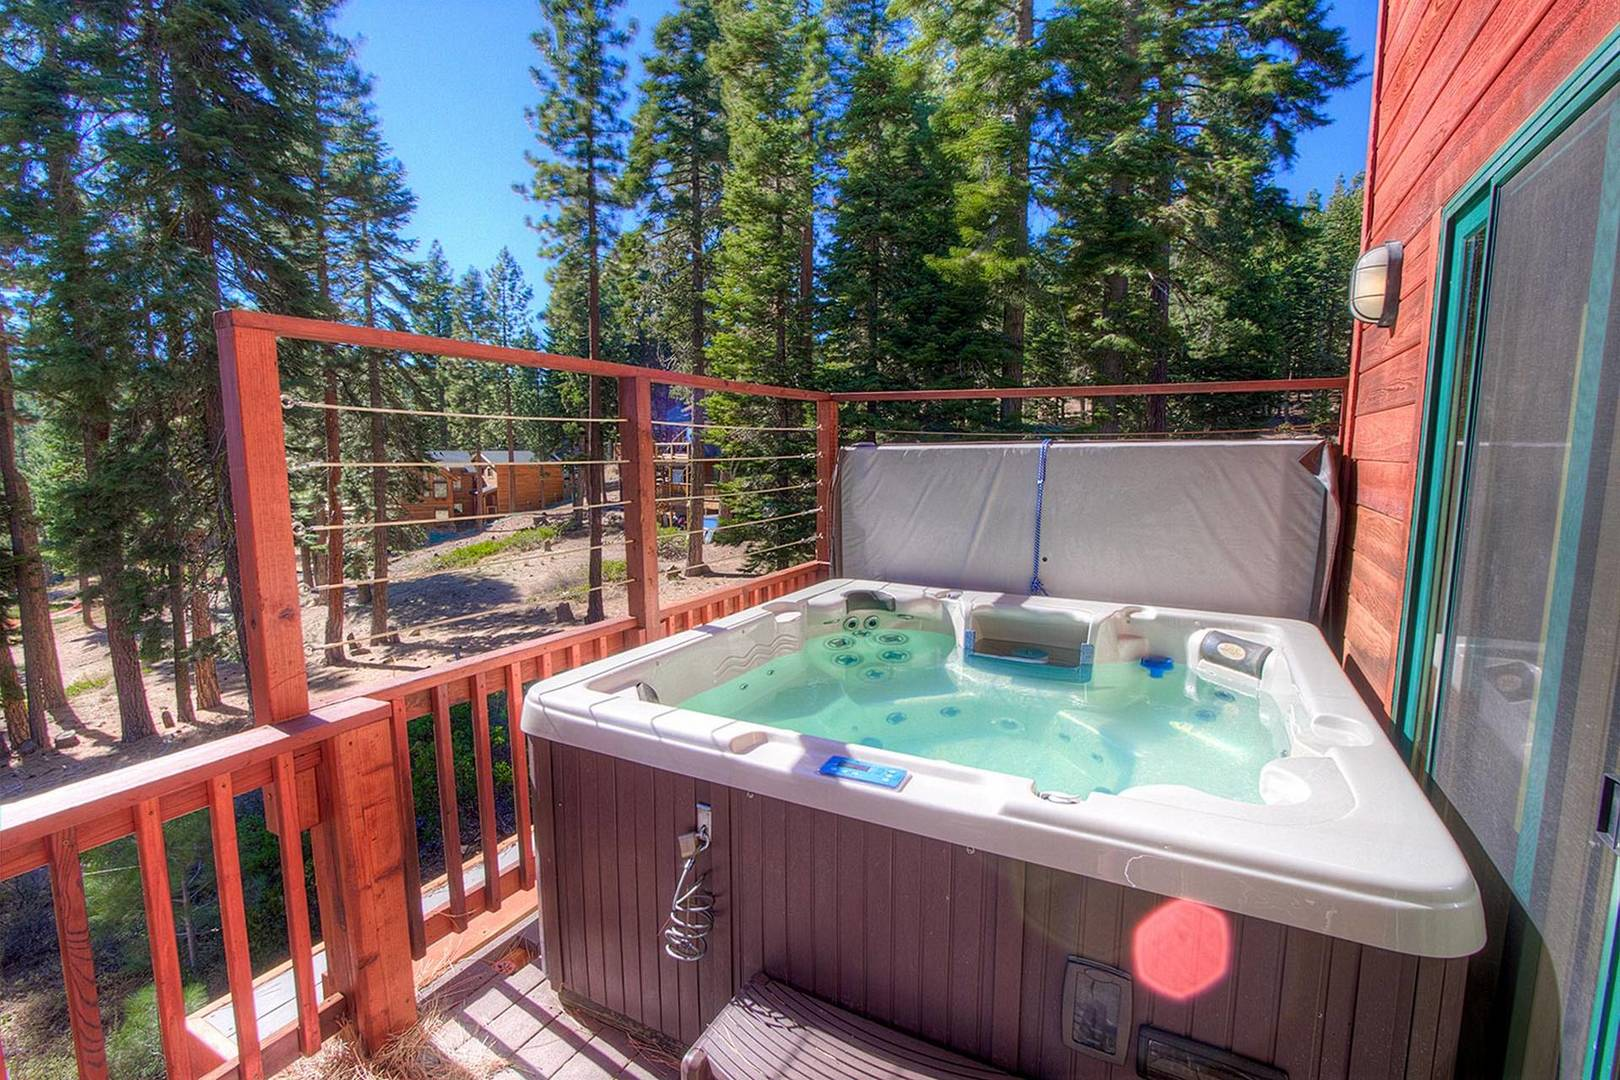 nsh1050 Hot Tub